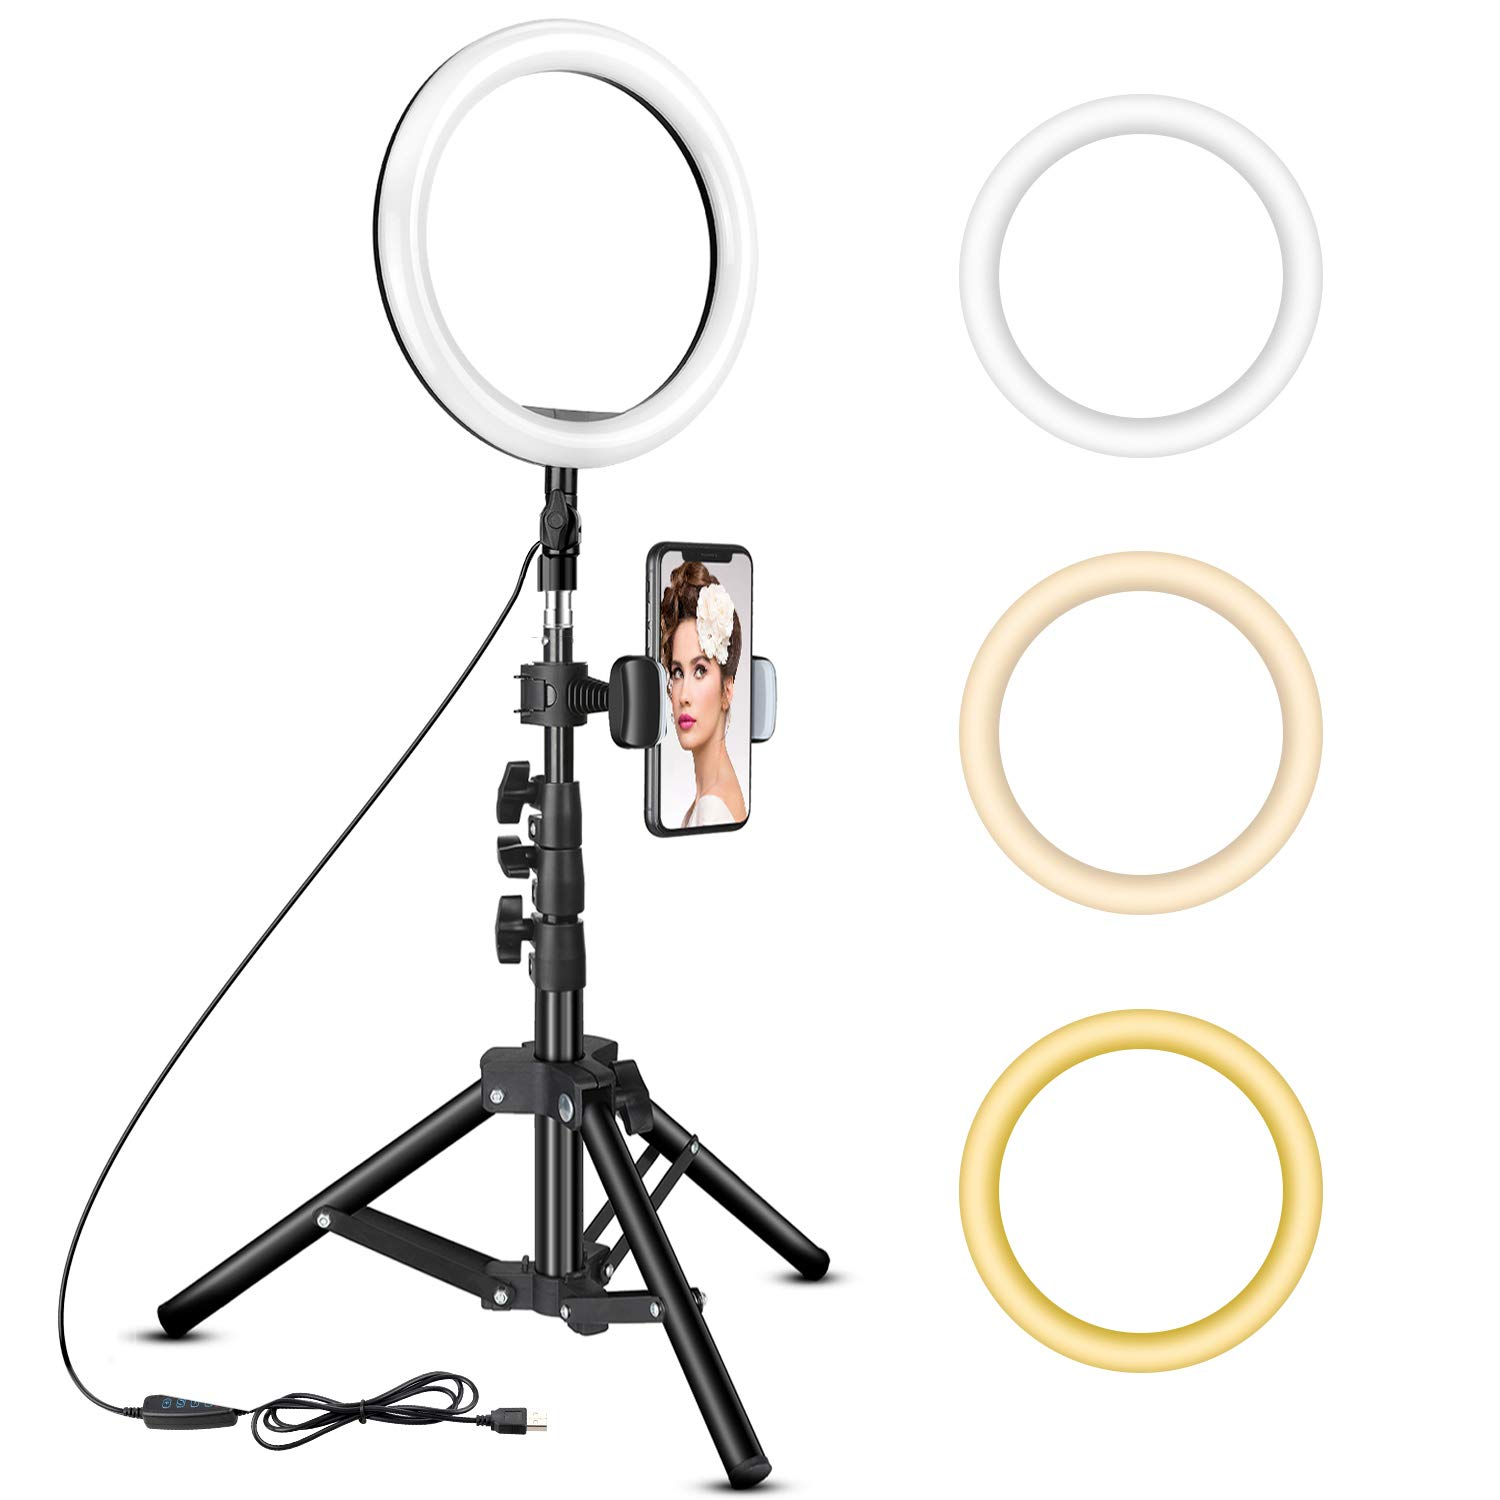 10 inch Ring Light with Tripod Stand - Rovtop LED Camera Selfie Light Ring with iPhone Tripod and Phone Holder for Video Photography Makeup Live Streaming, Compatible with iPhone and Android Phone by Rovtop